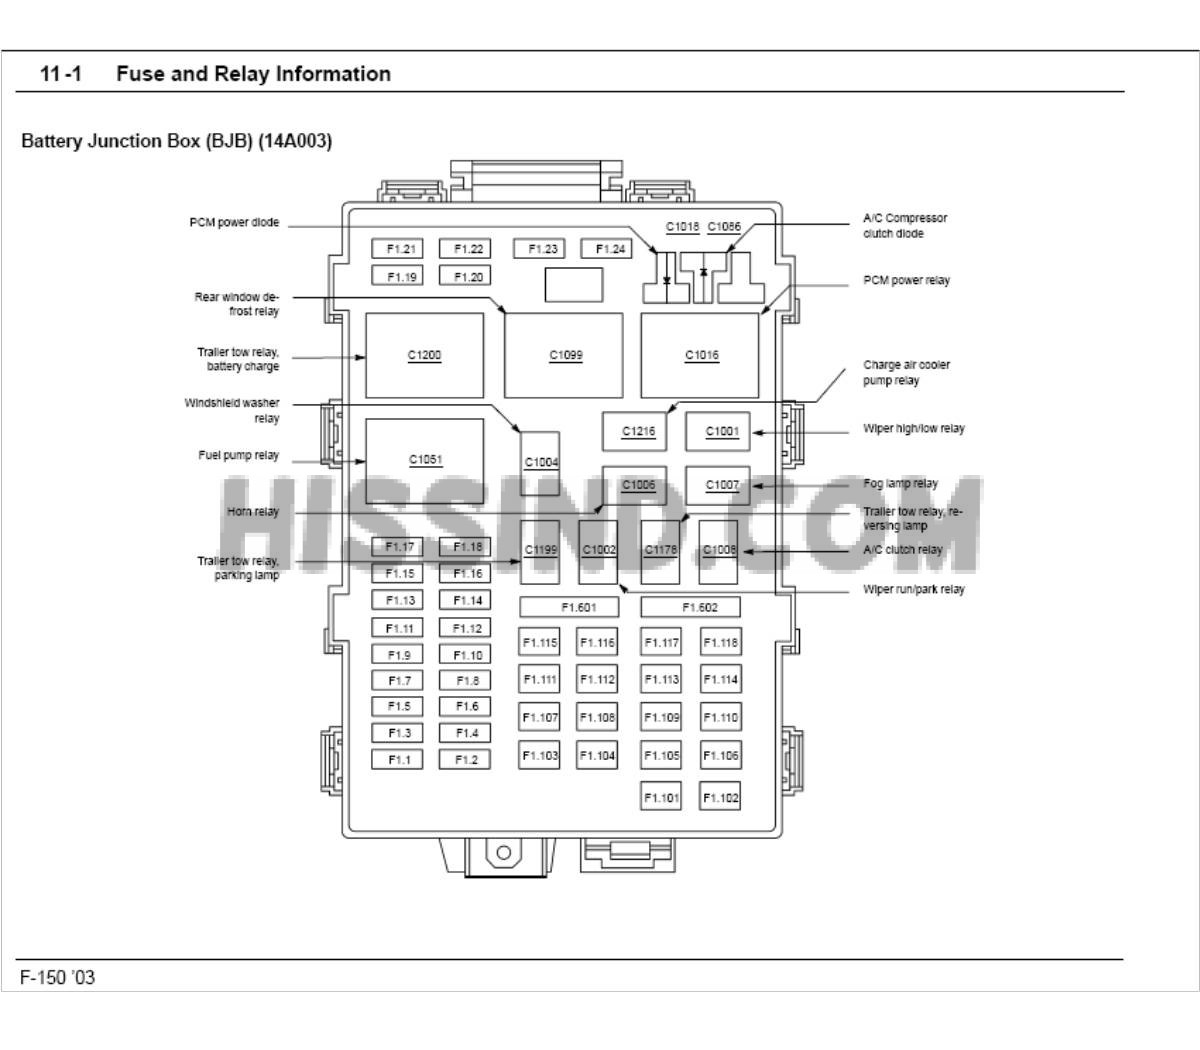 Fuse Box Location Home : Ford f fuse box diagram engine bay